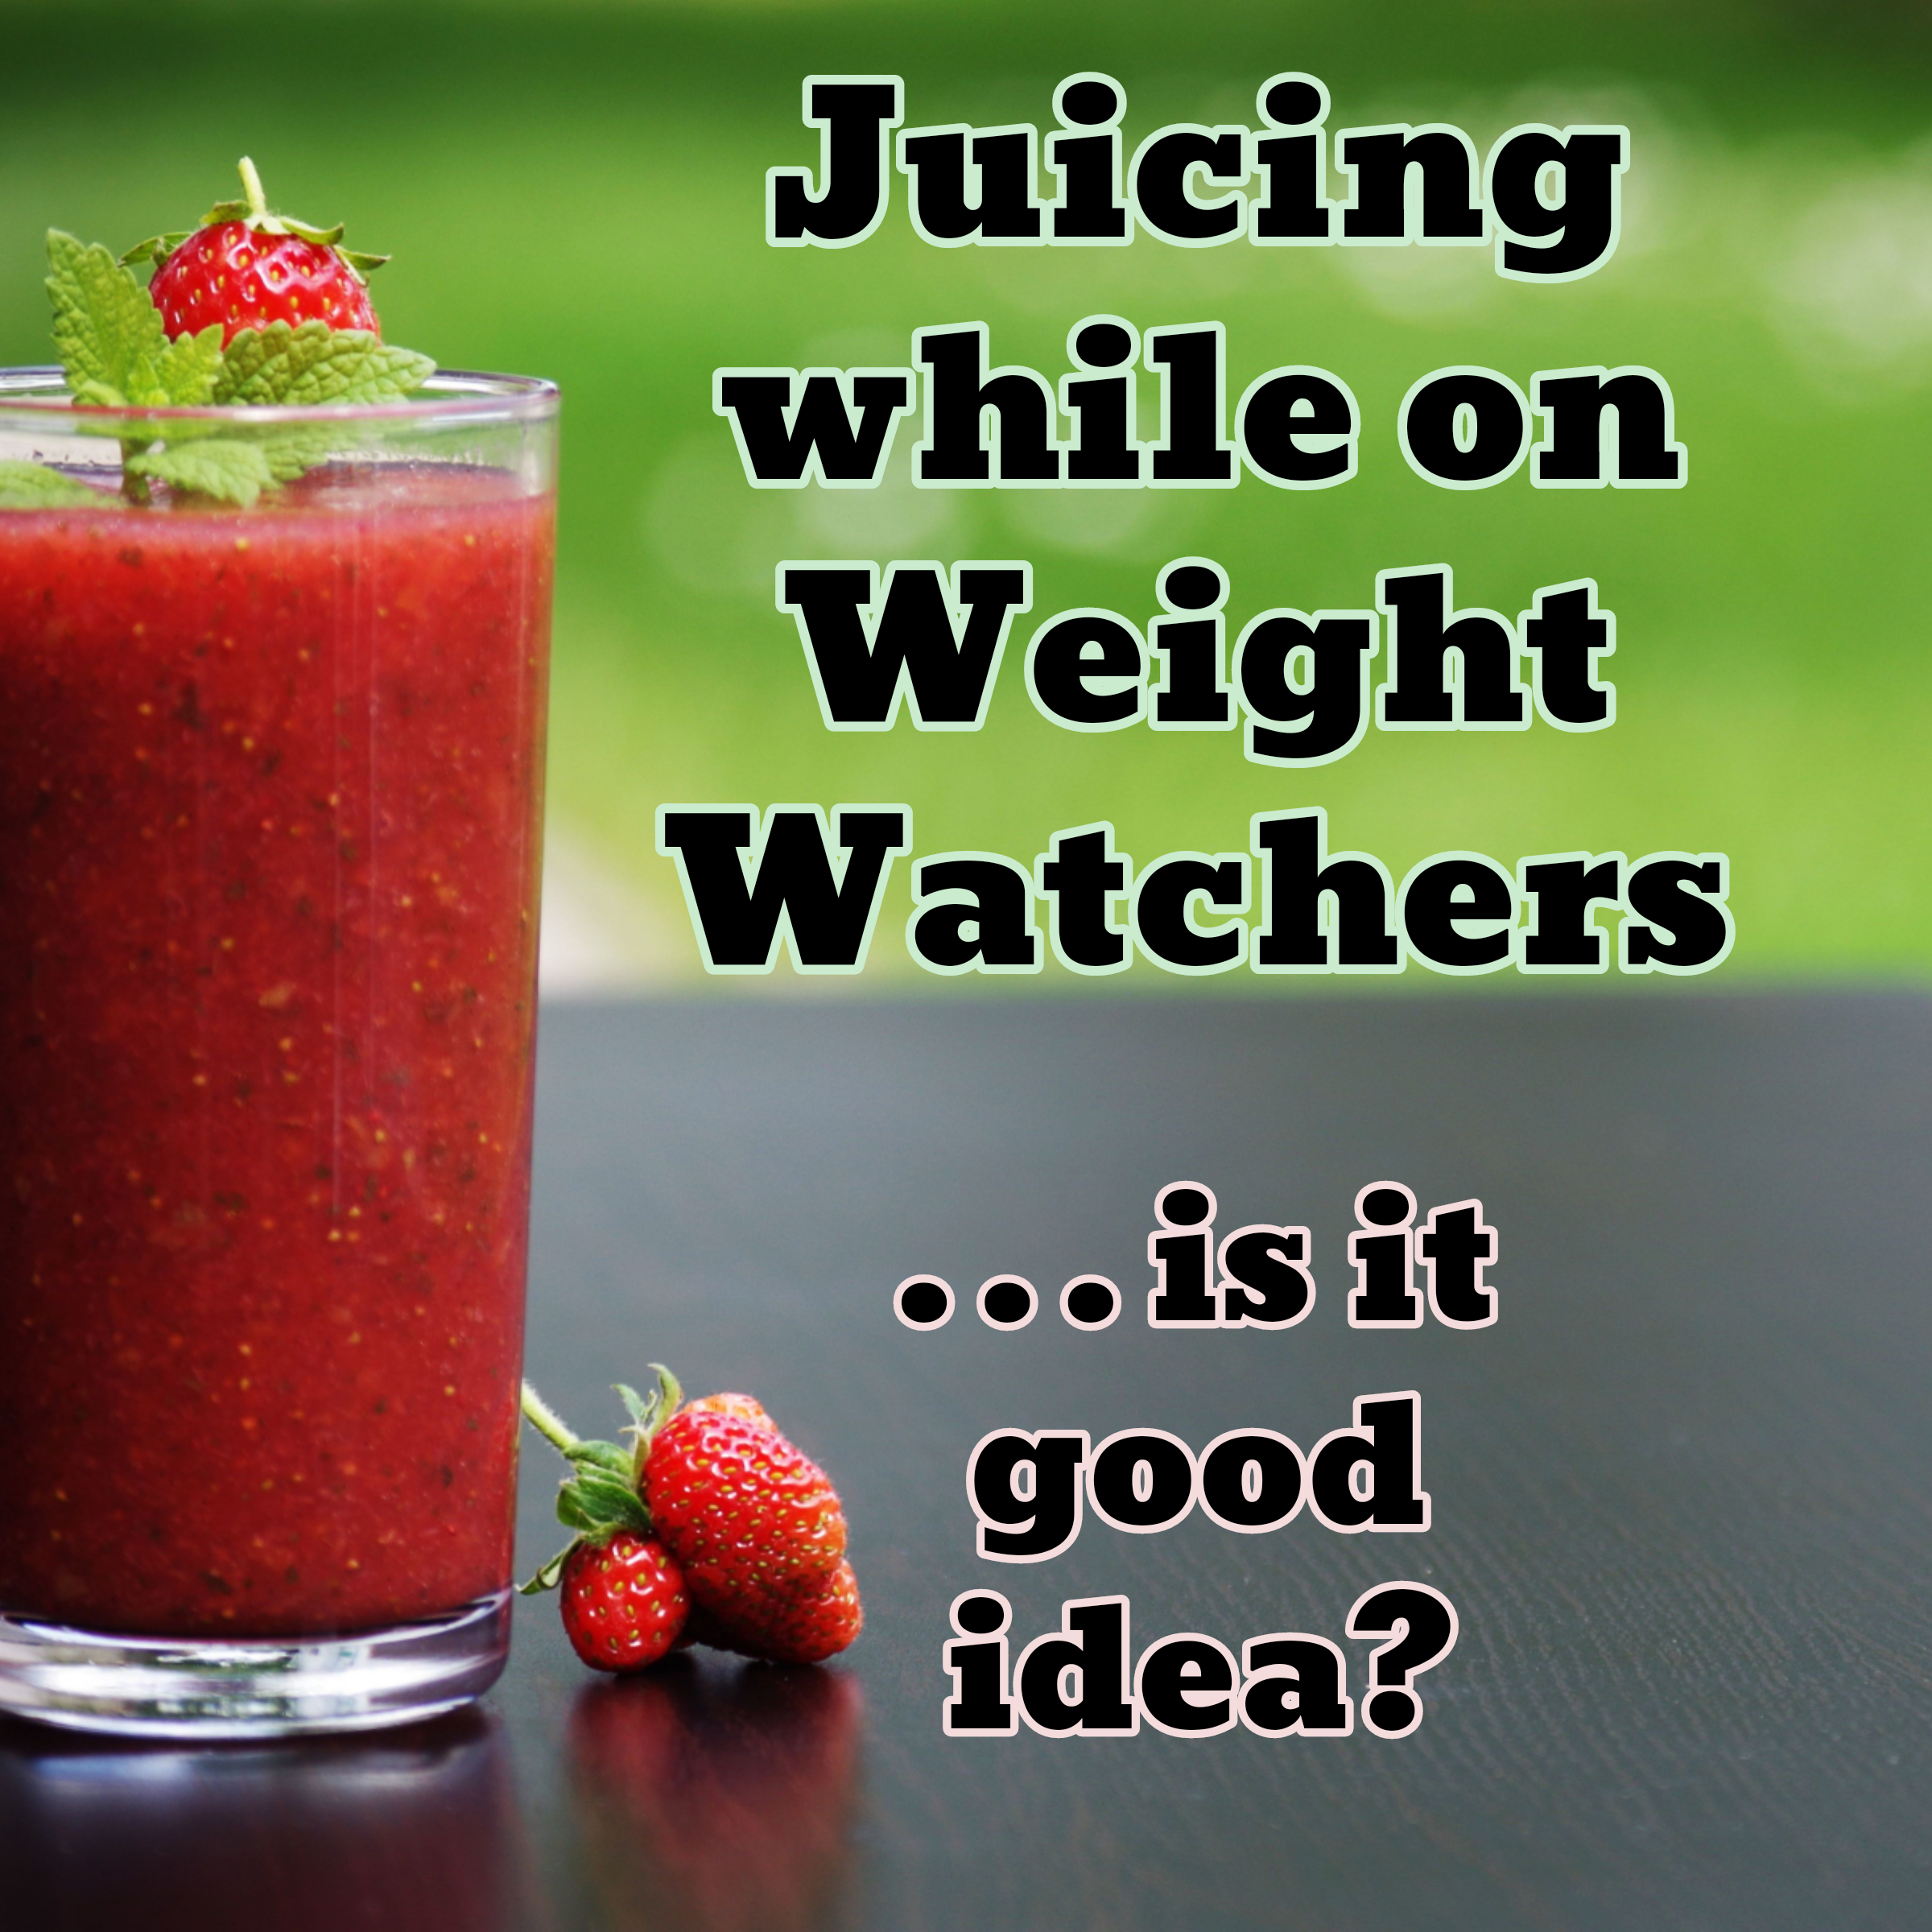 Juicing while on weight watchers is it a good idea tasty sweet juicing while on weight watchers is it a good idea malvernweather Gallery